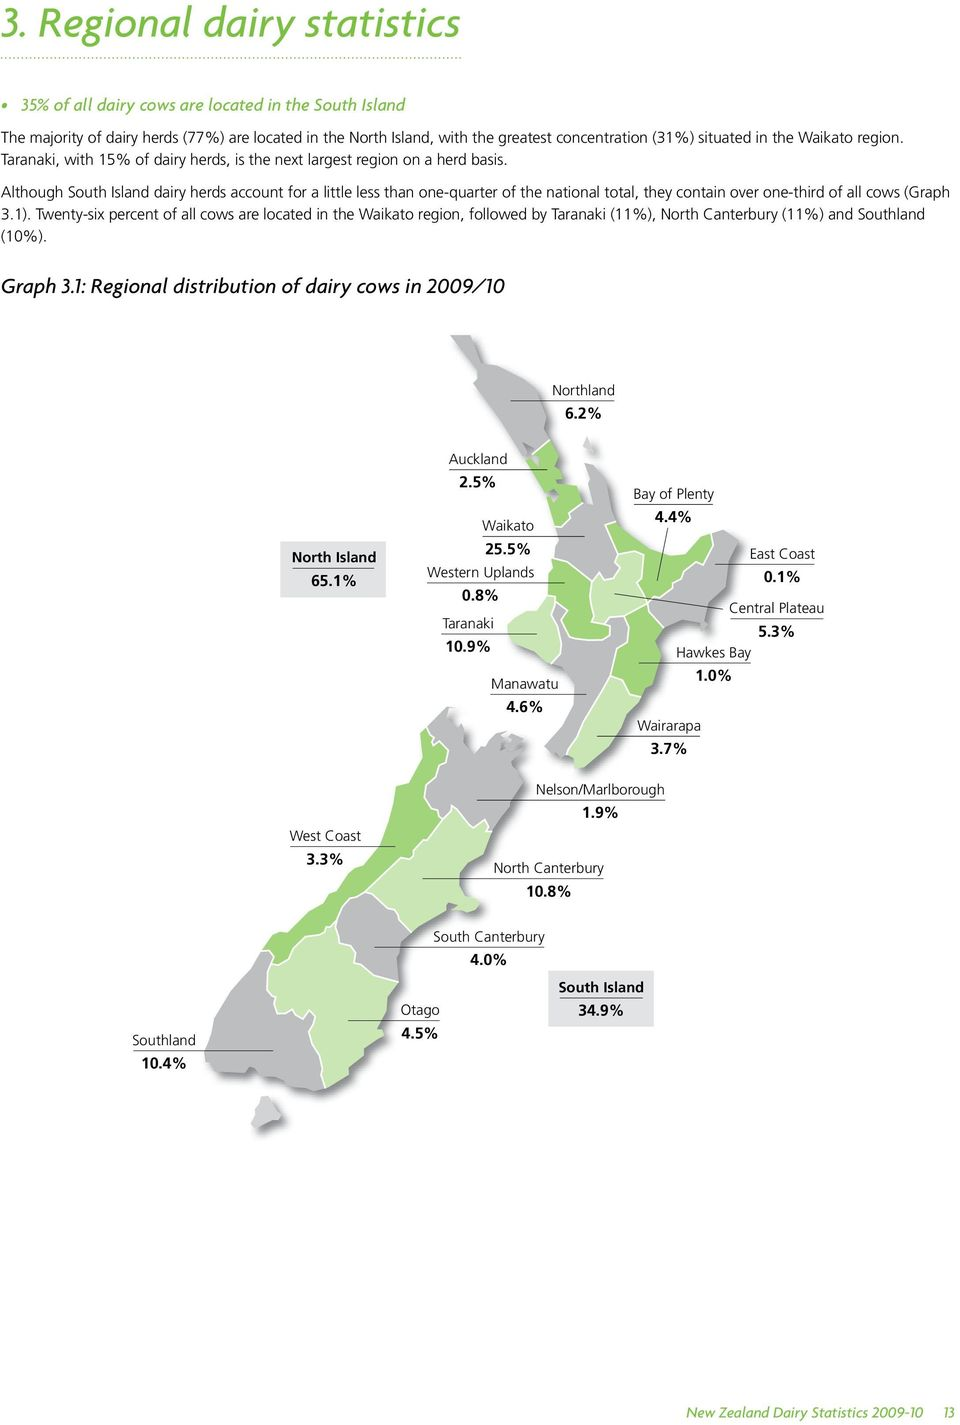 Although South Island dairy herds account for a little less than one-quarter of the national total, they contain over one-third of all cows (Graph 3.1).